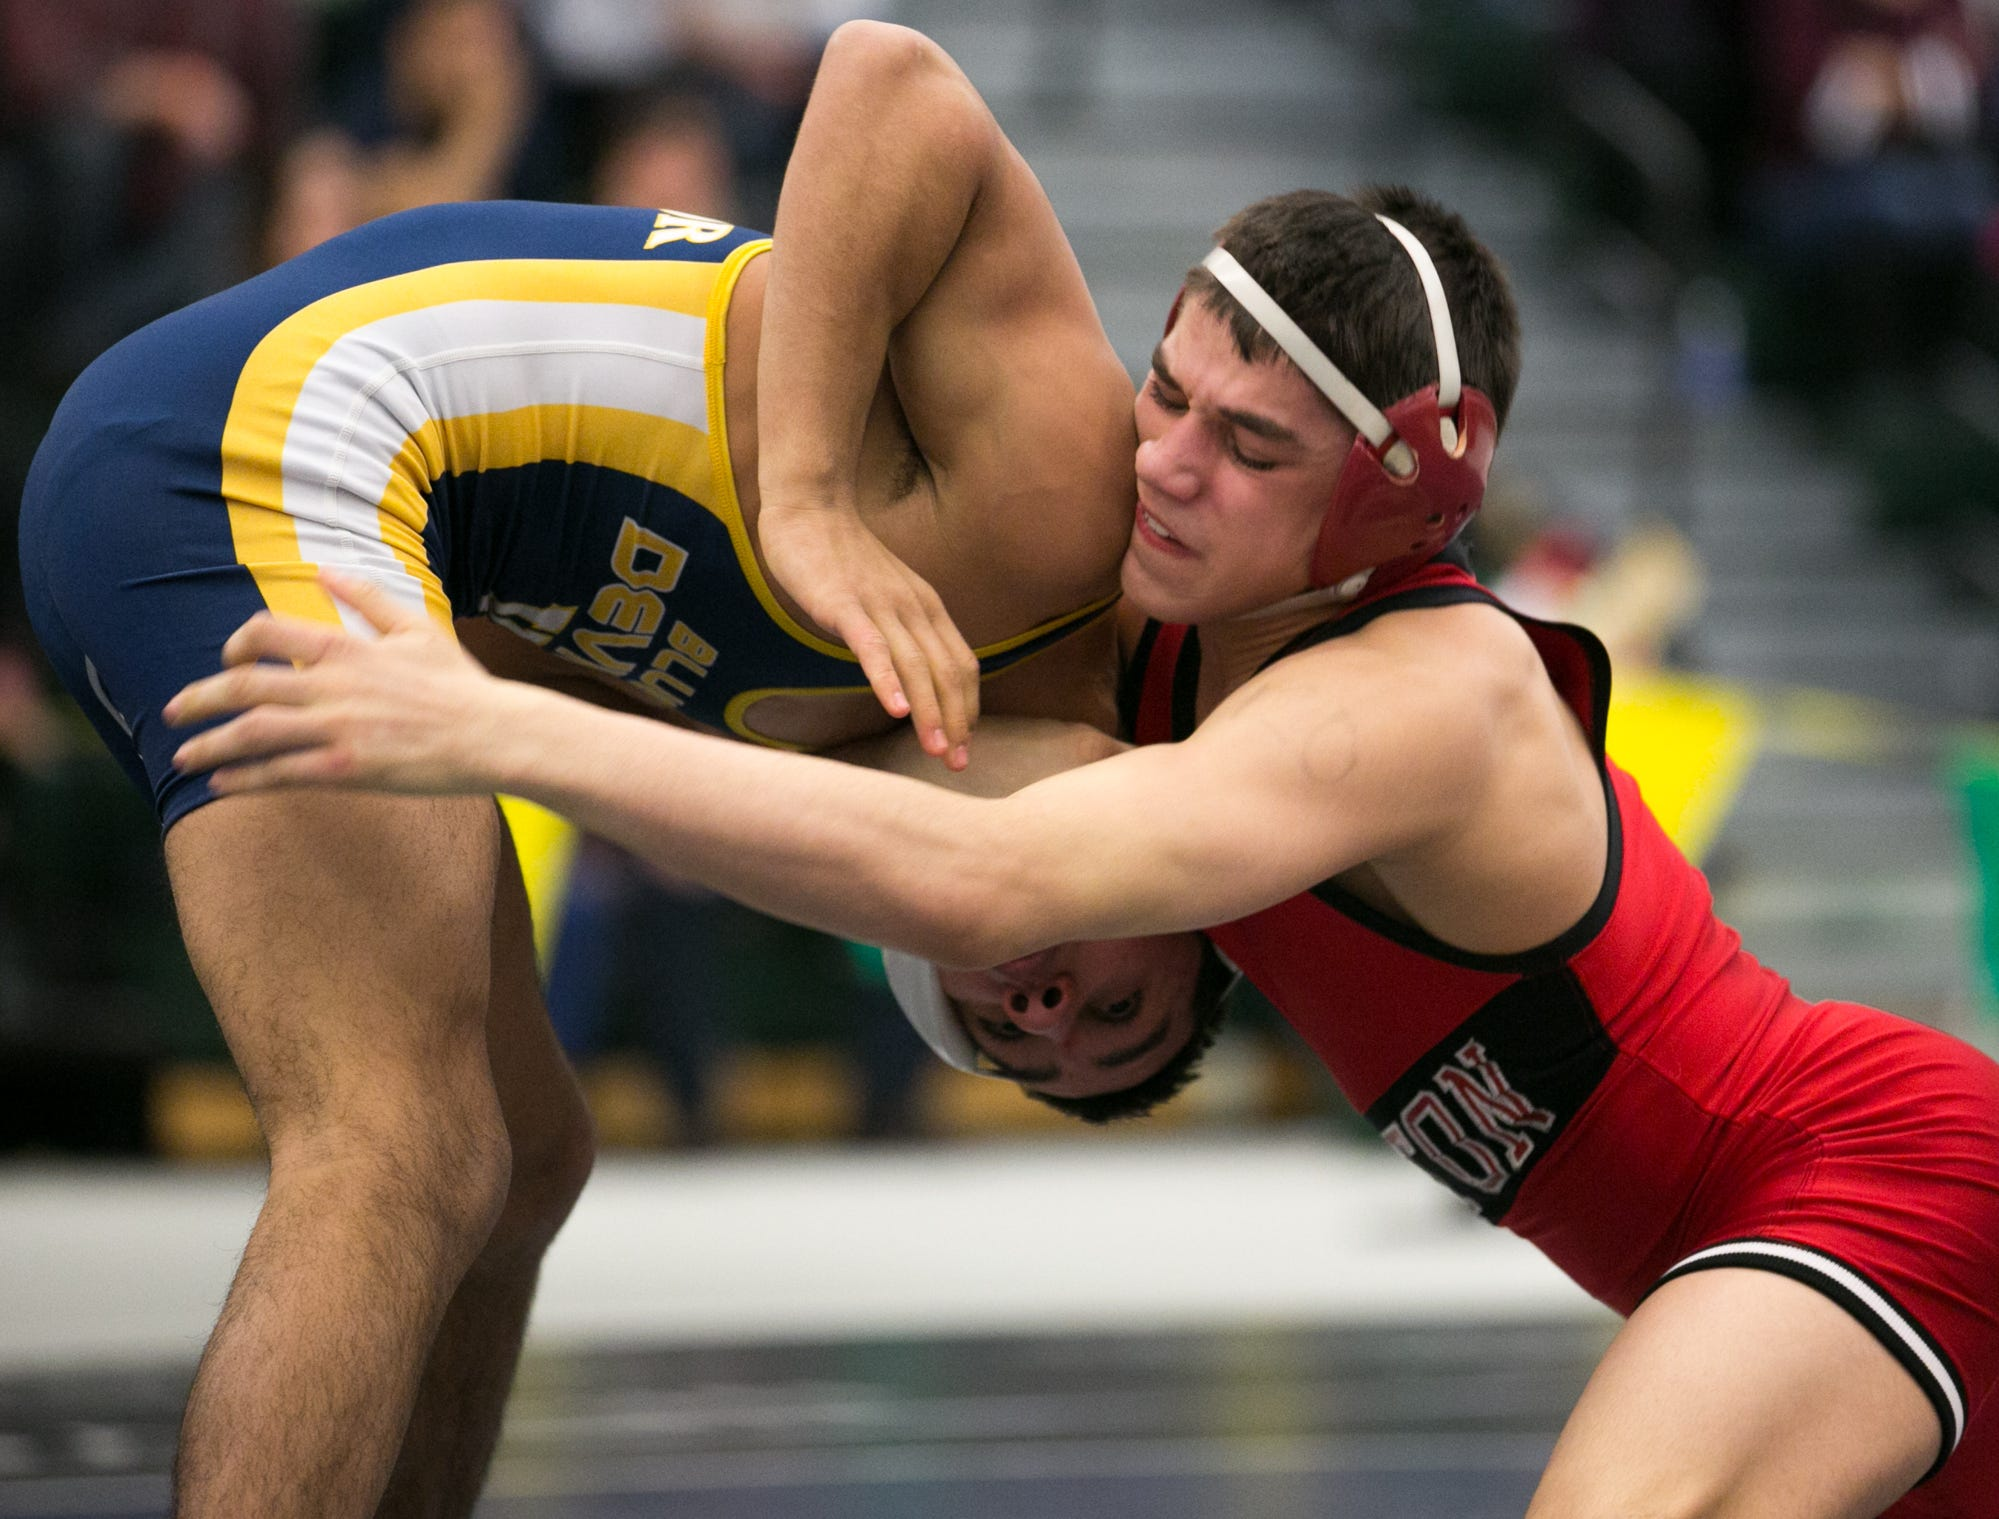 Yianni Diakomihalis of Hilton, right, competes with Mike Venosa of Victor in the championship match for the 120-pound weight class at the state qualifying wrestling meet at the College and Brockport on Saturday, February 14, 2015.